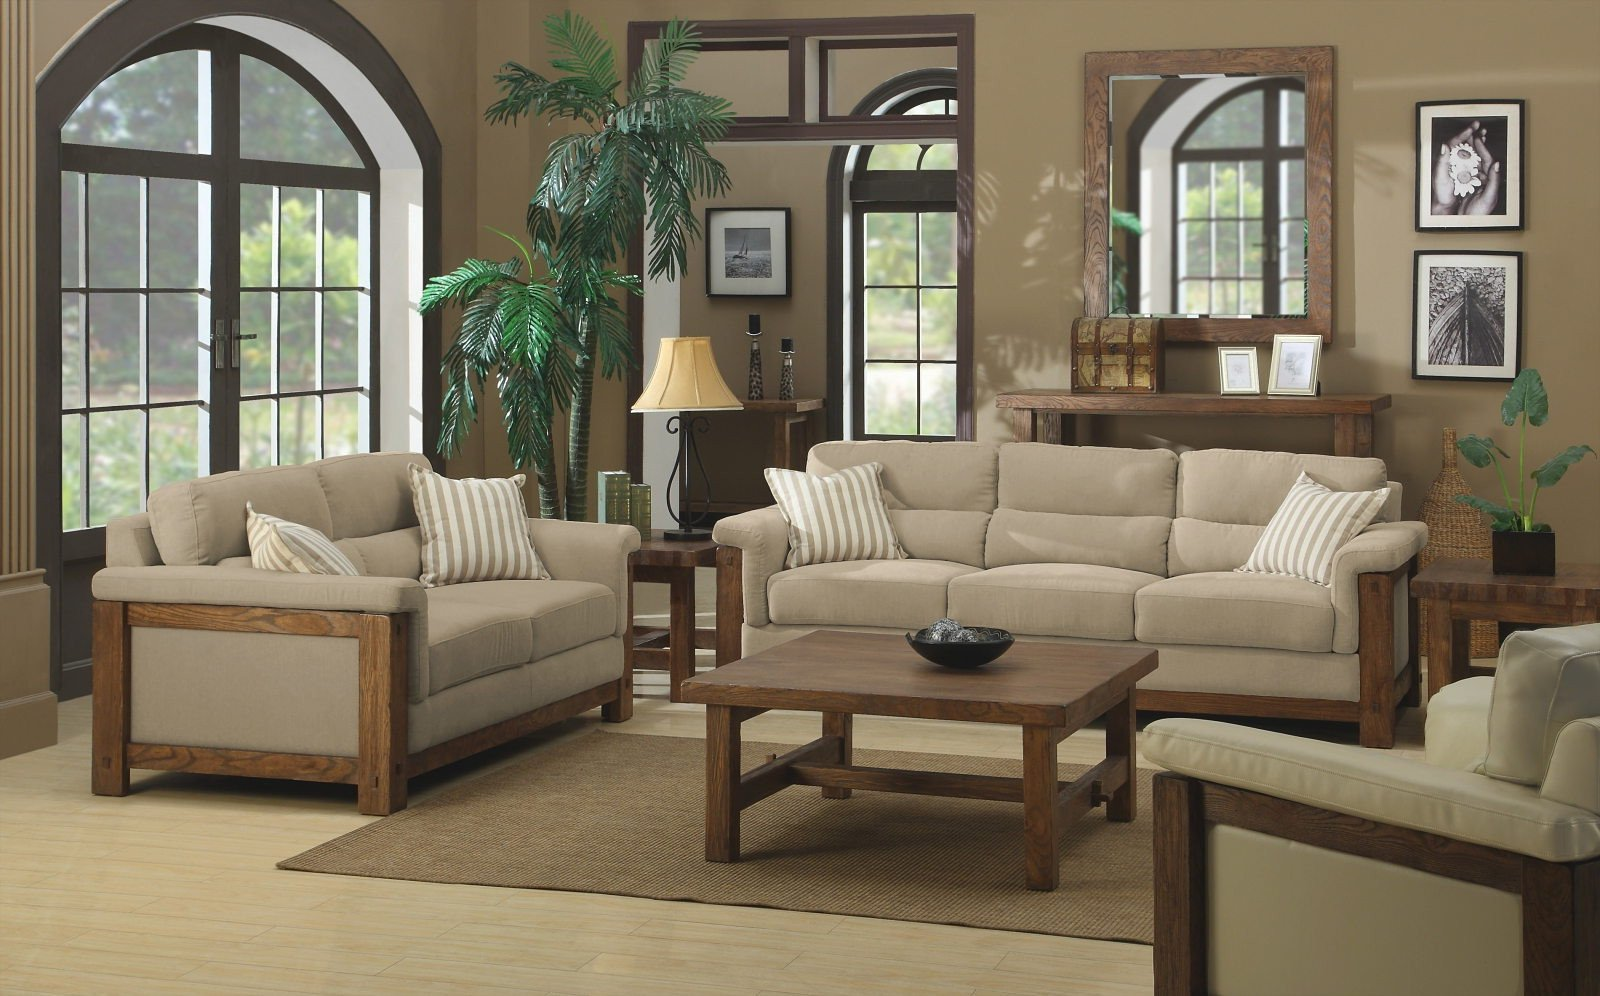 Beige Modern Living Room Decorating Ideas Inspirational Living Room In Beige Color